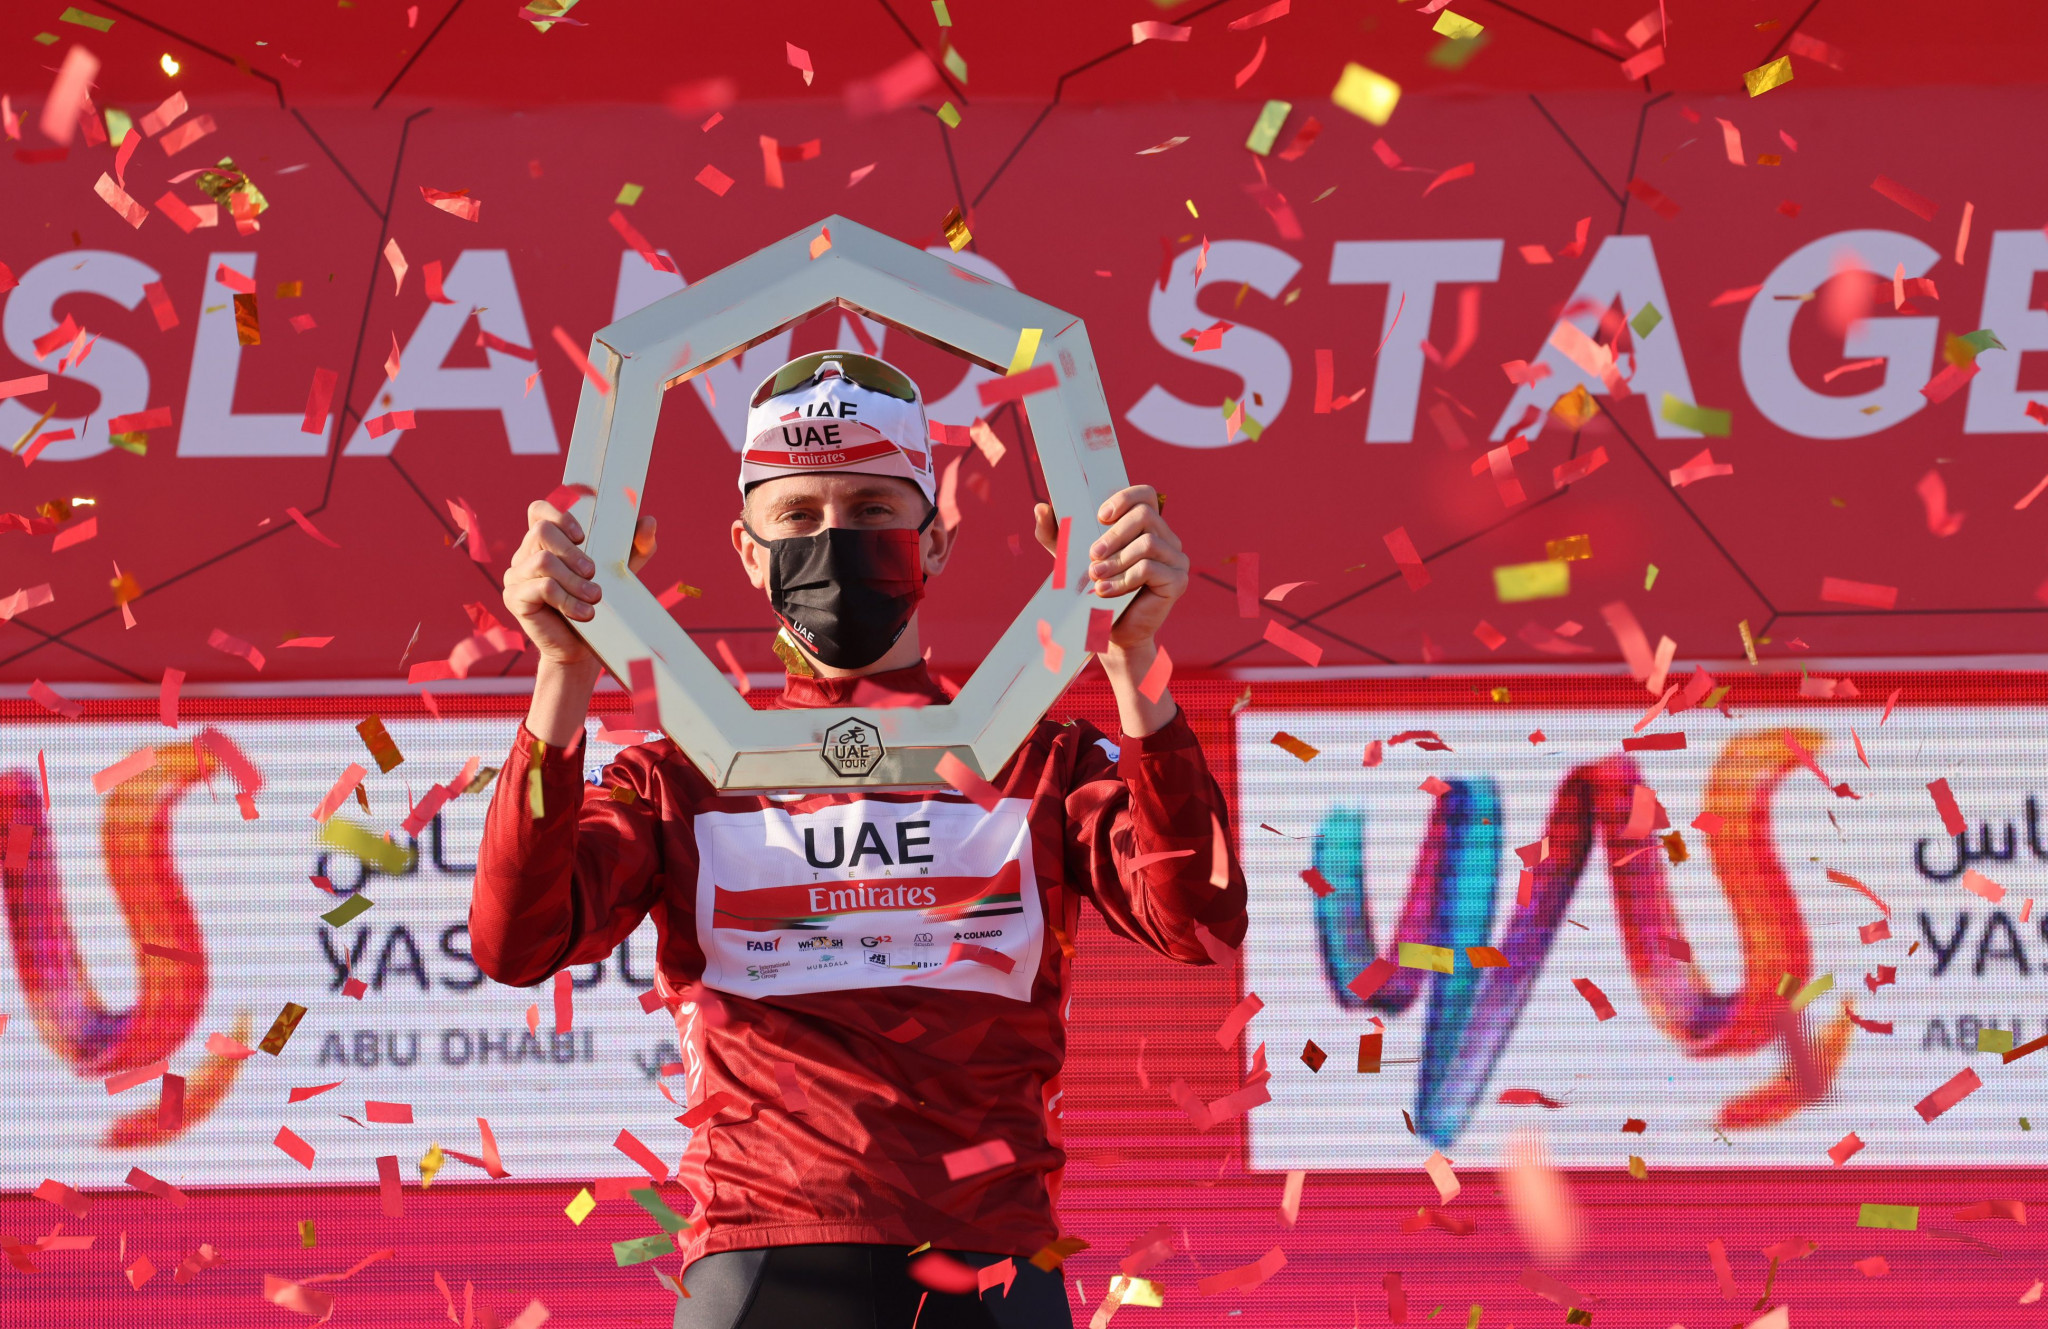 Pogačar wins UAE Tour as Ewan triumphs in final stage sprint finish